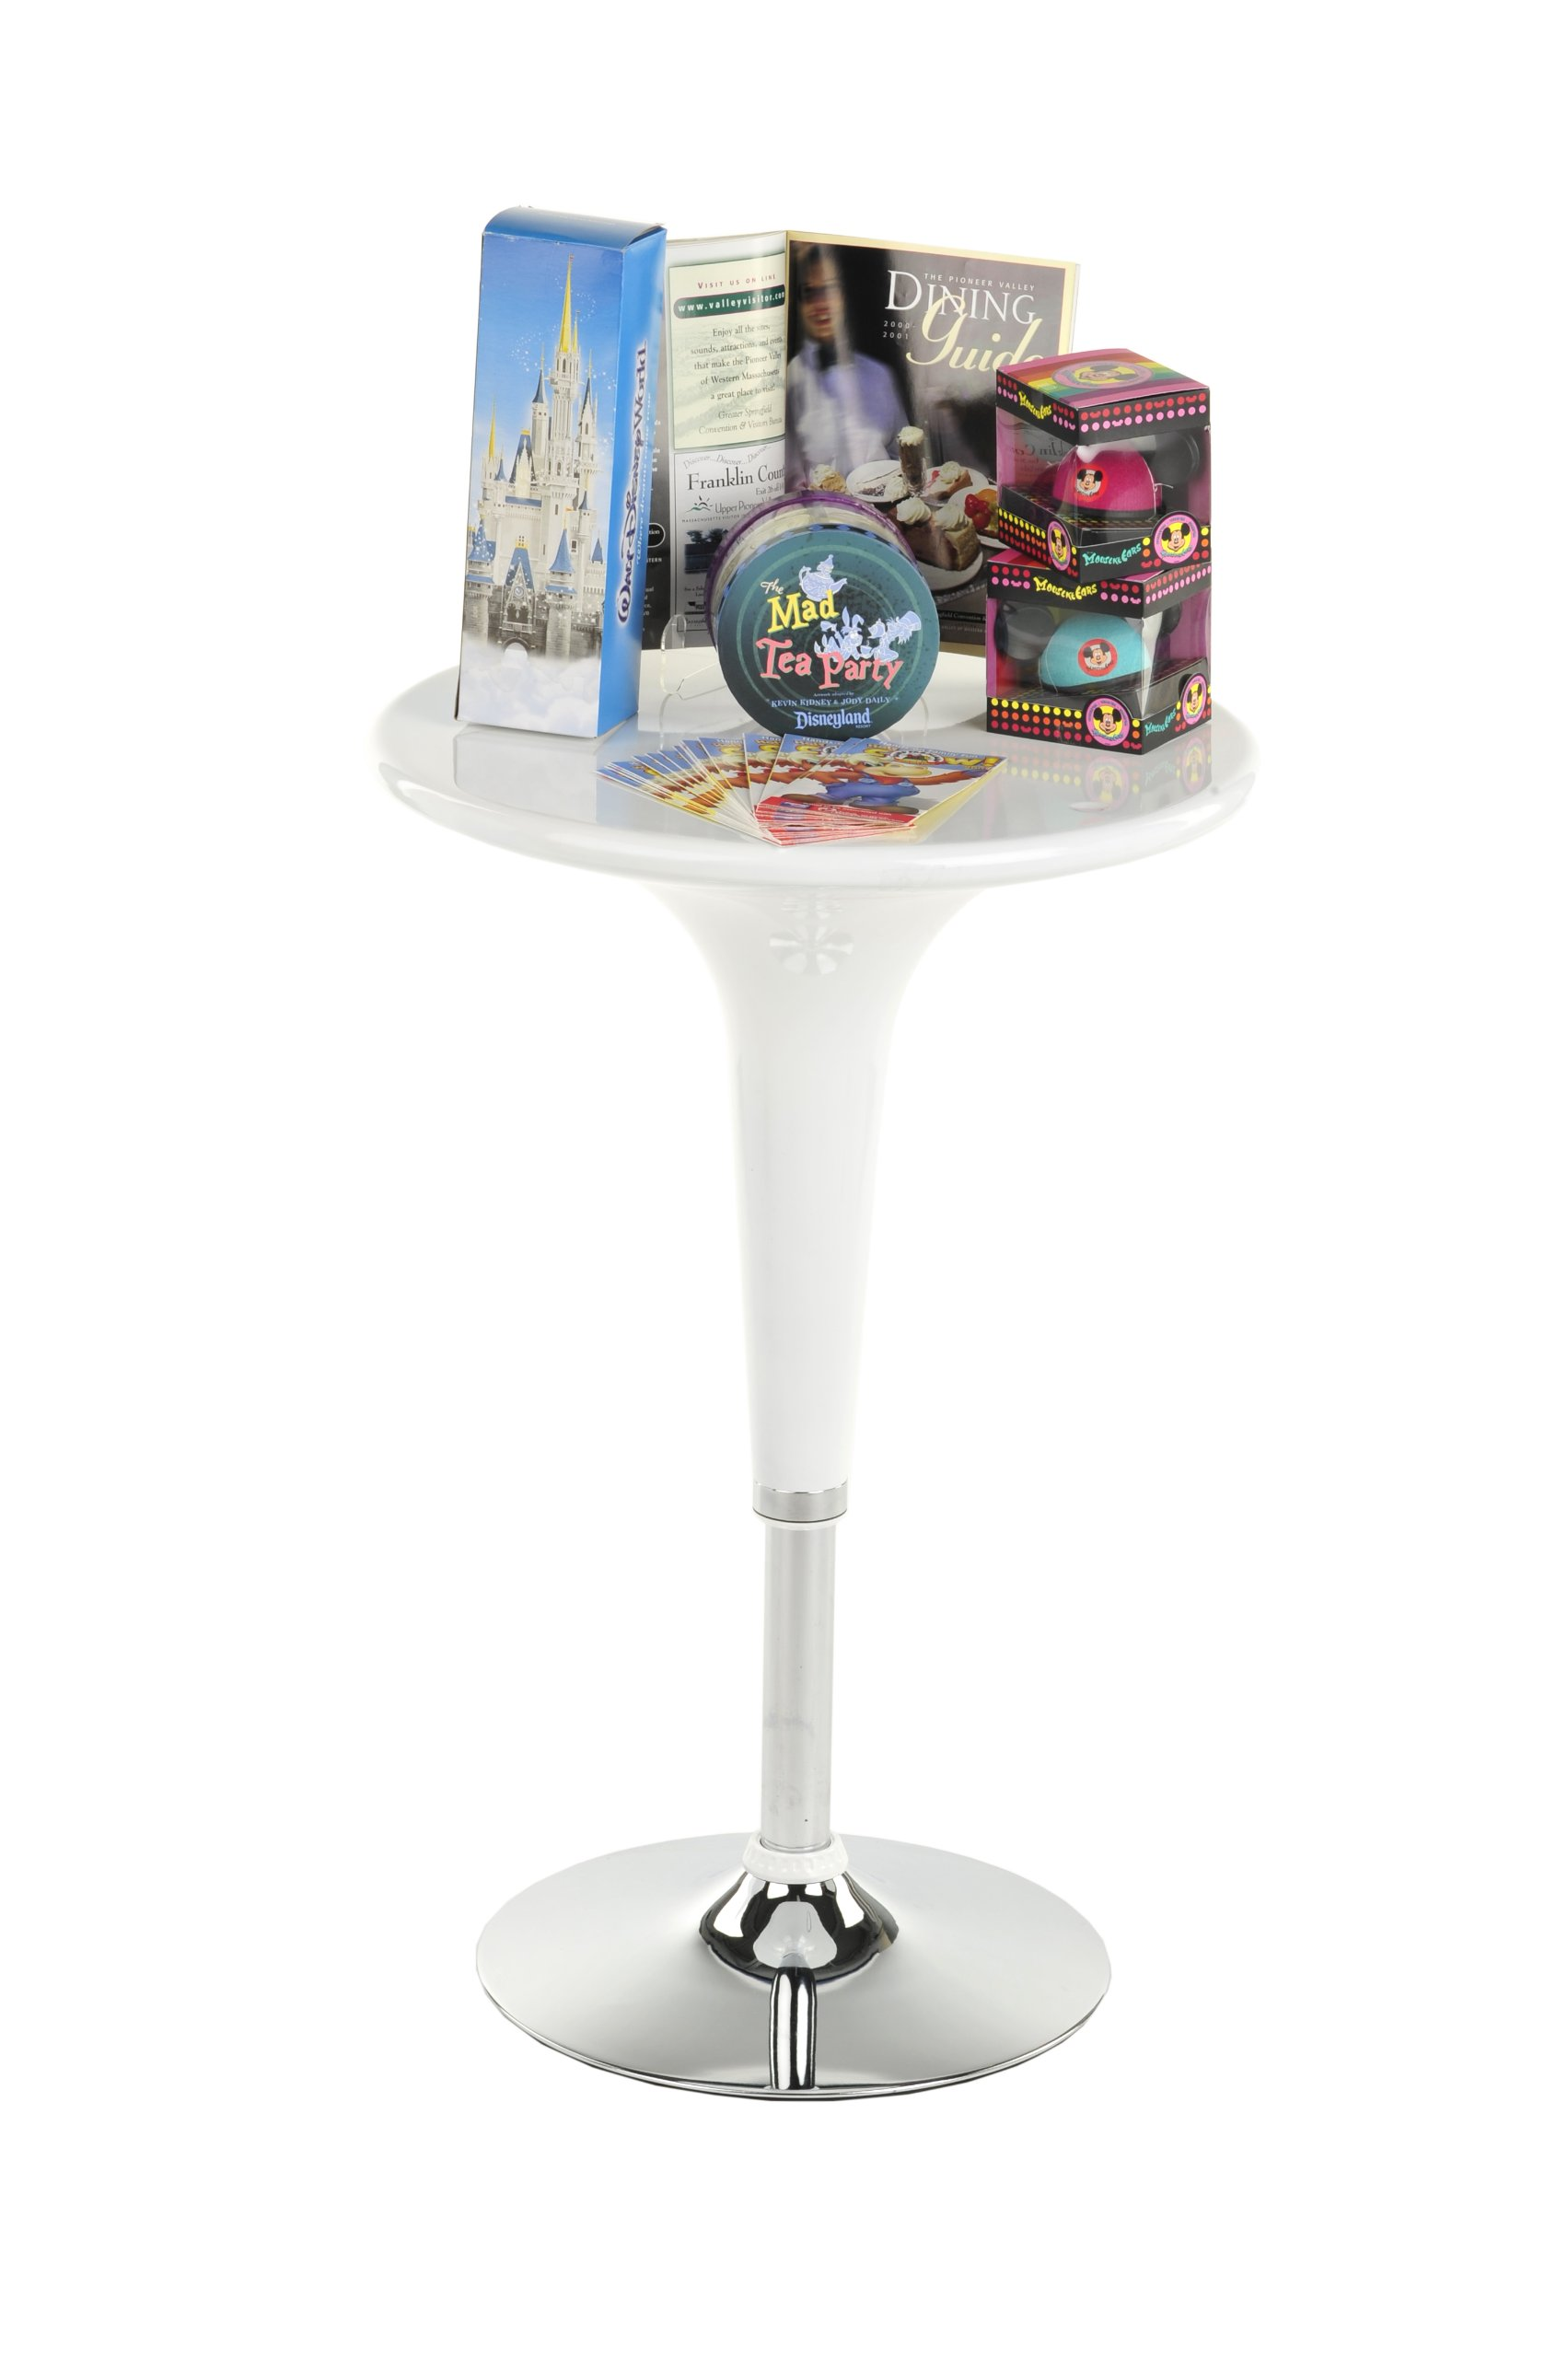 Displays2go BRTBLBF1W Adjustable Pub Table with 360 Degree Rotation, 24'', White by Displays2go (Image #7)